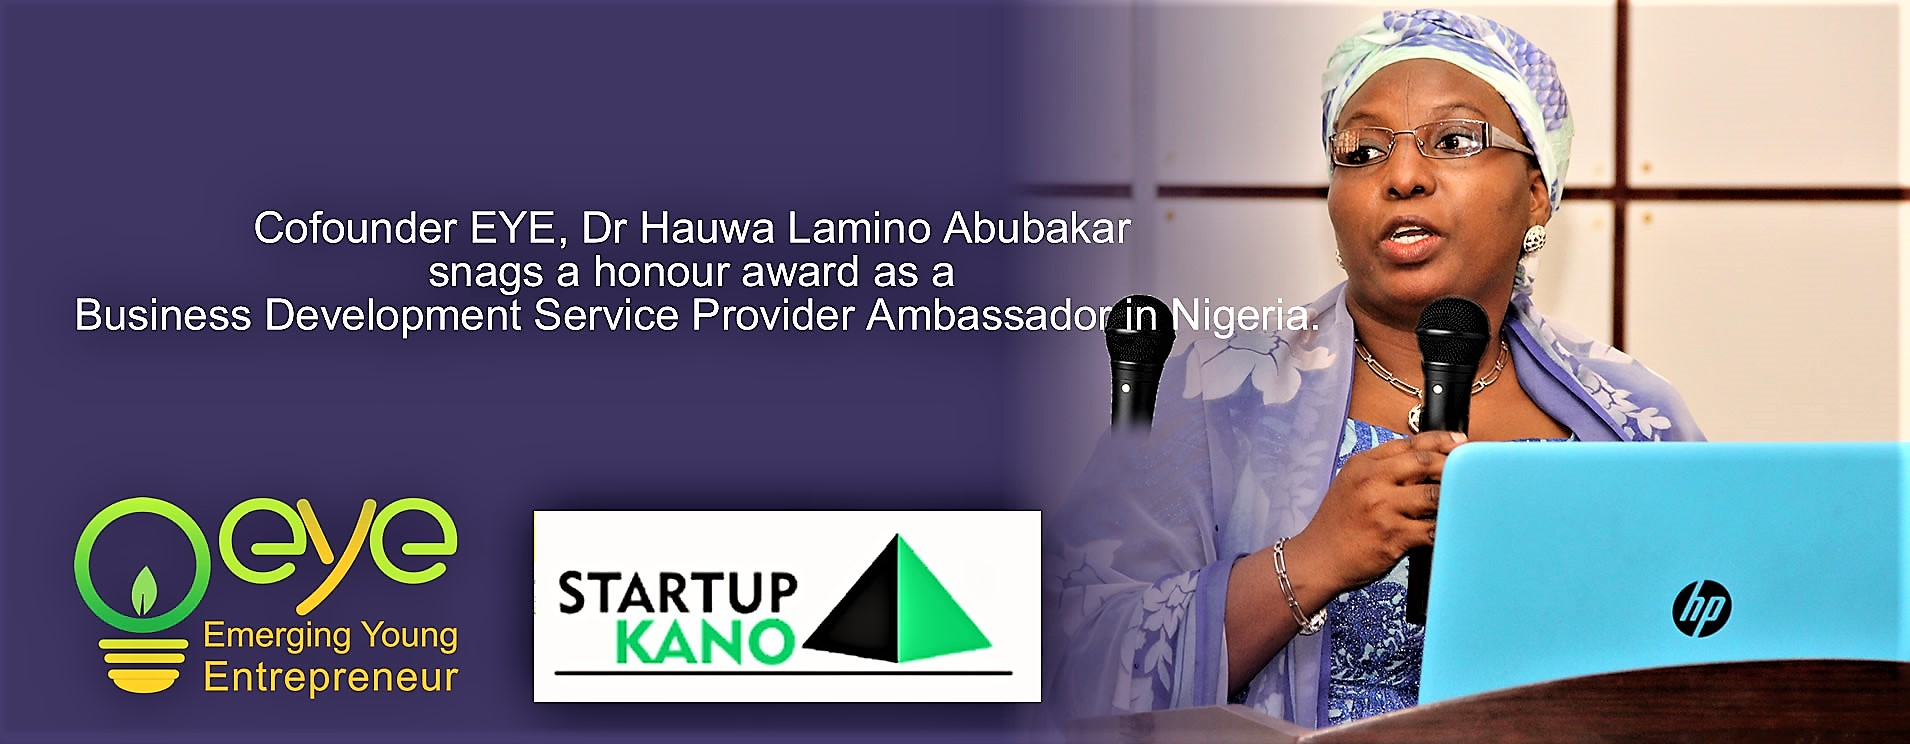 EYE partner Startup Kano hosting the 2nd Edition of the Women Founders Conference, 15th December, 2017.